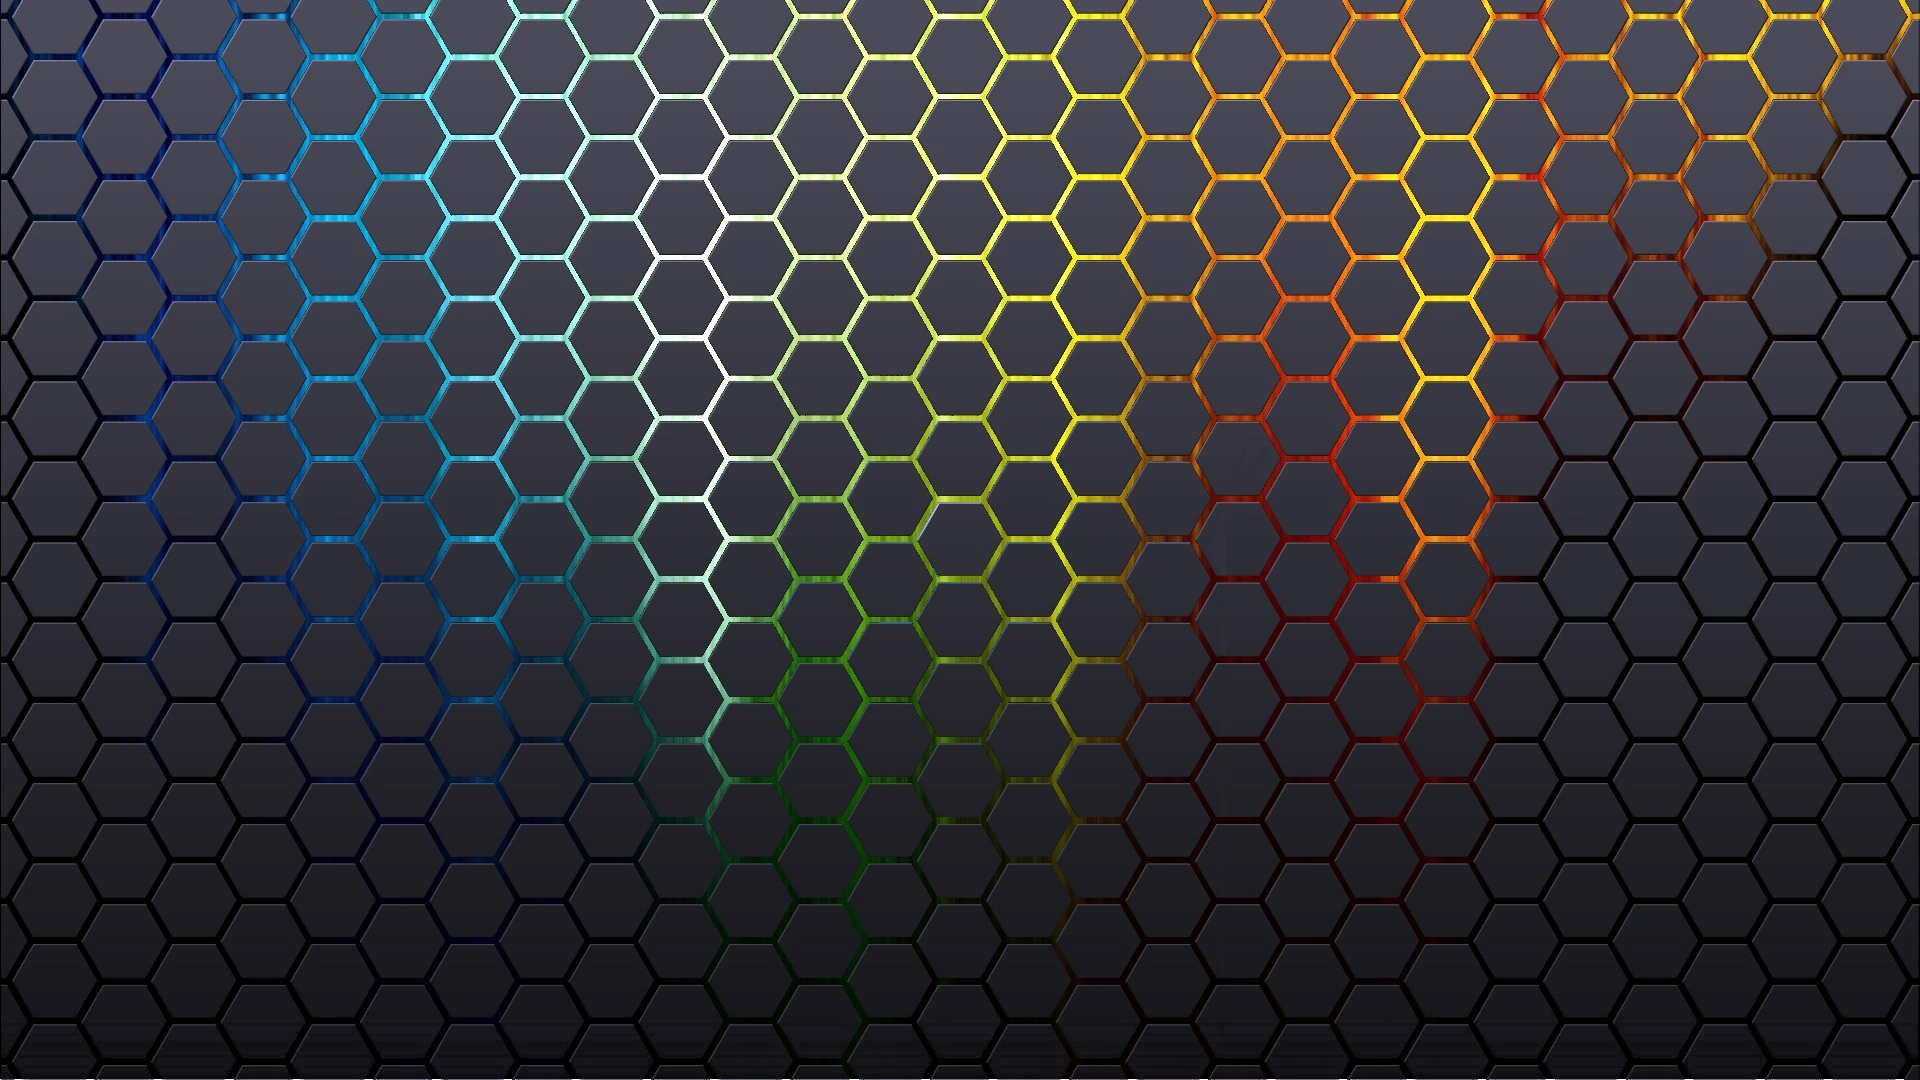 Abstract Patterns Hexagons Textures Wallpaper 1920x1080